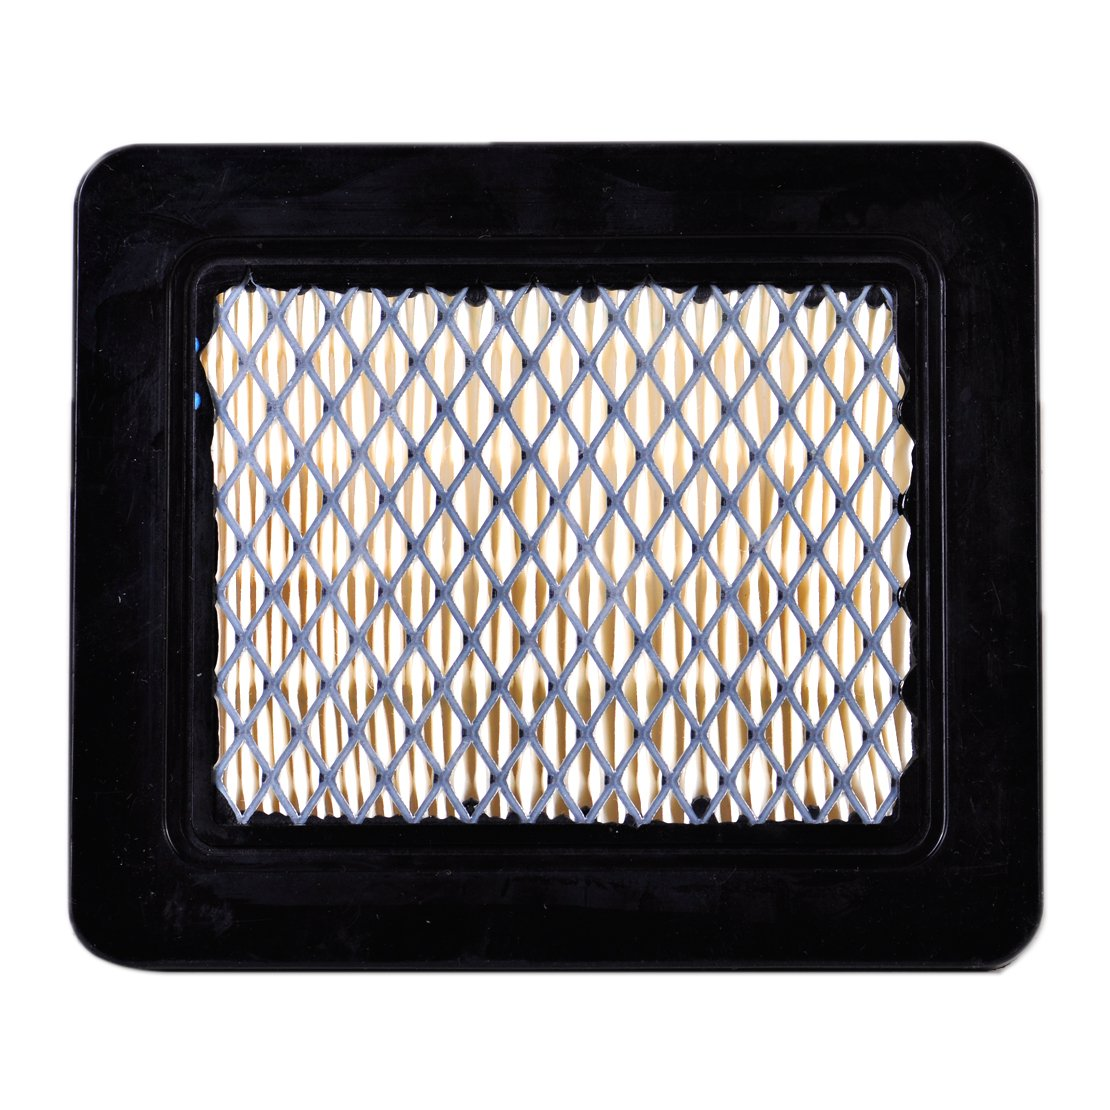 Air Filter Replacement 17211ZL8023 fit for Honda GC135 160 190 GCV 135 160 190 GX100 HRR216 HRT 216 217 eastar